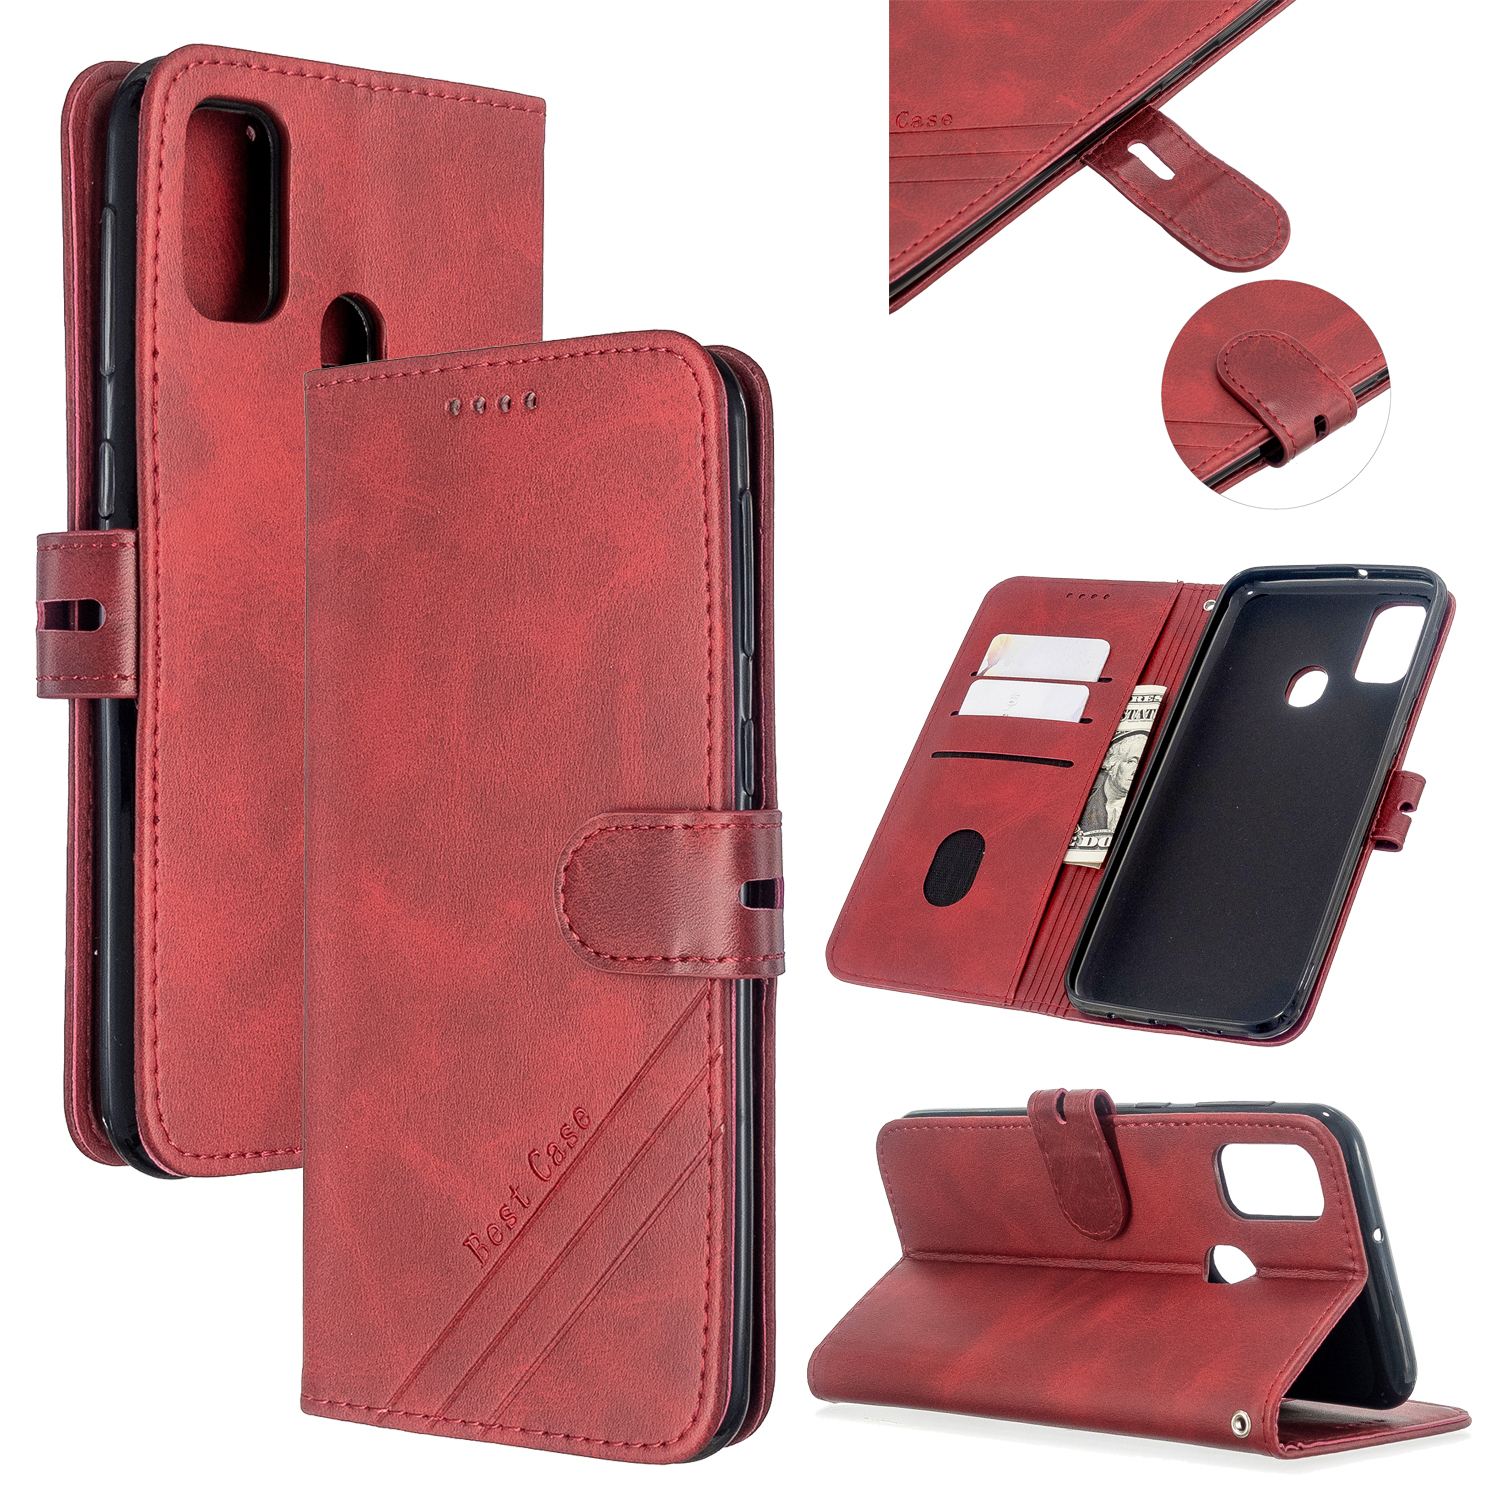 For Samsung A51/A71/M30S Case Soft Leather Cover with Denim Texture Precise Cutouts Wallet Design Buckle Closure Smartphone Shell  red